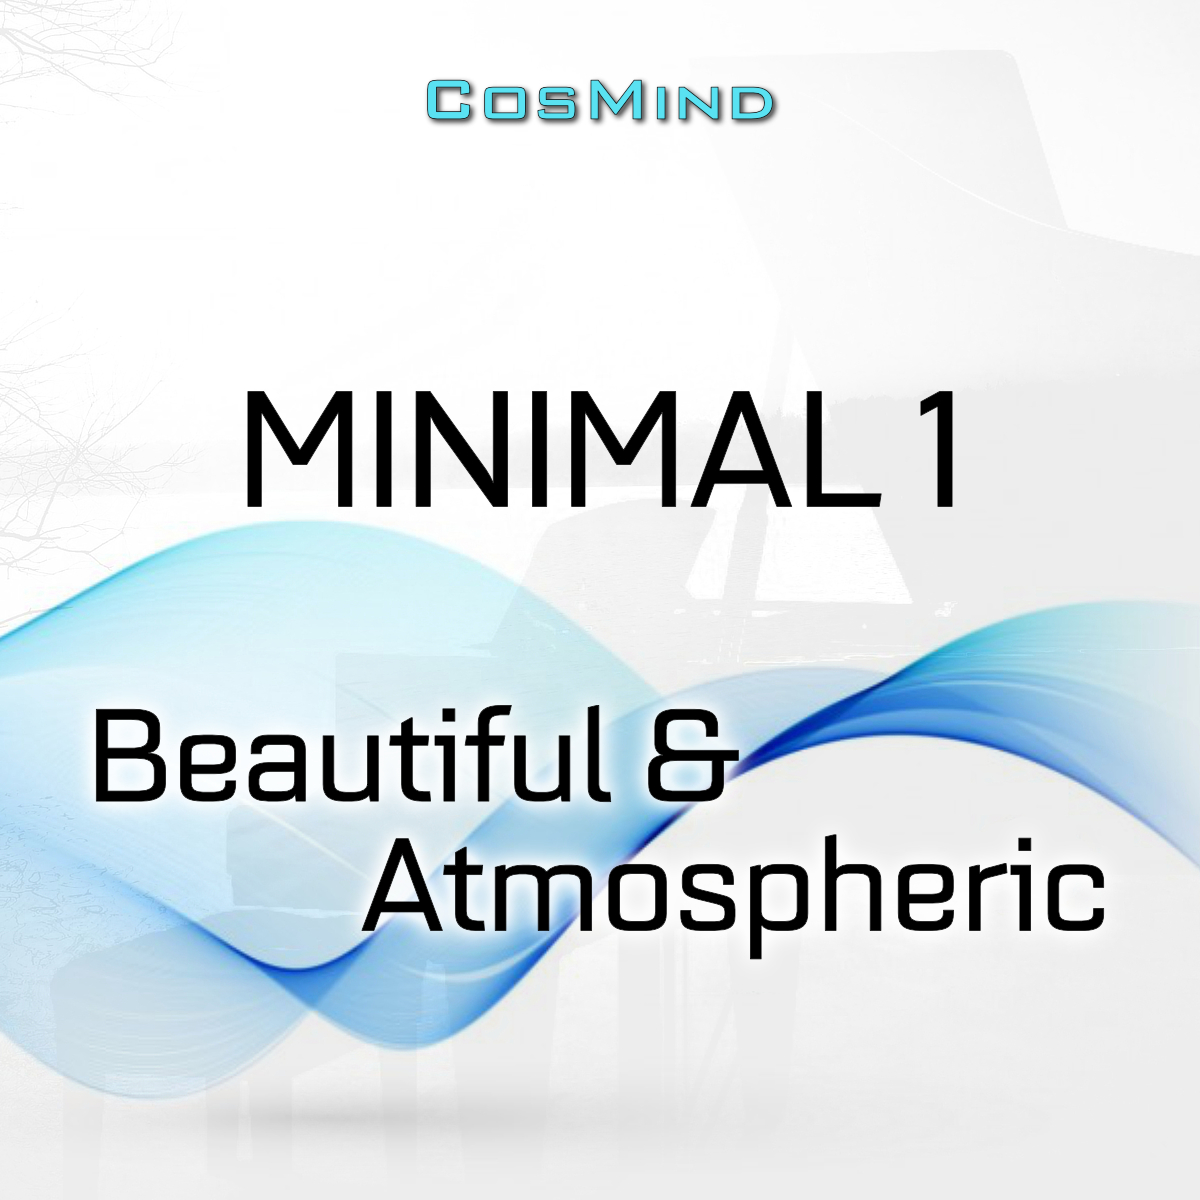 Minimal 1 - Beautiful & Atmospheric